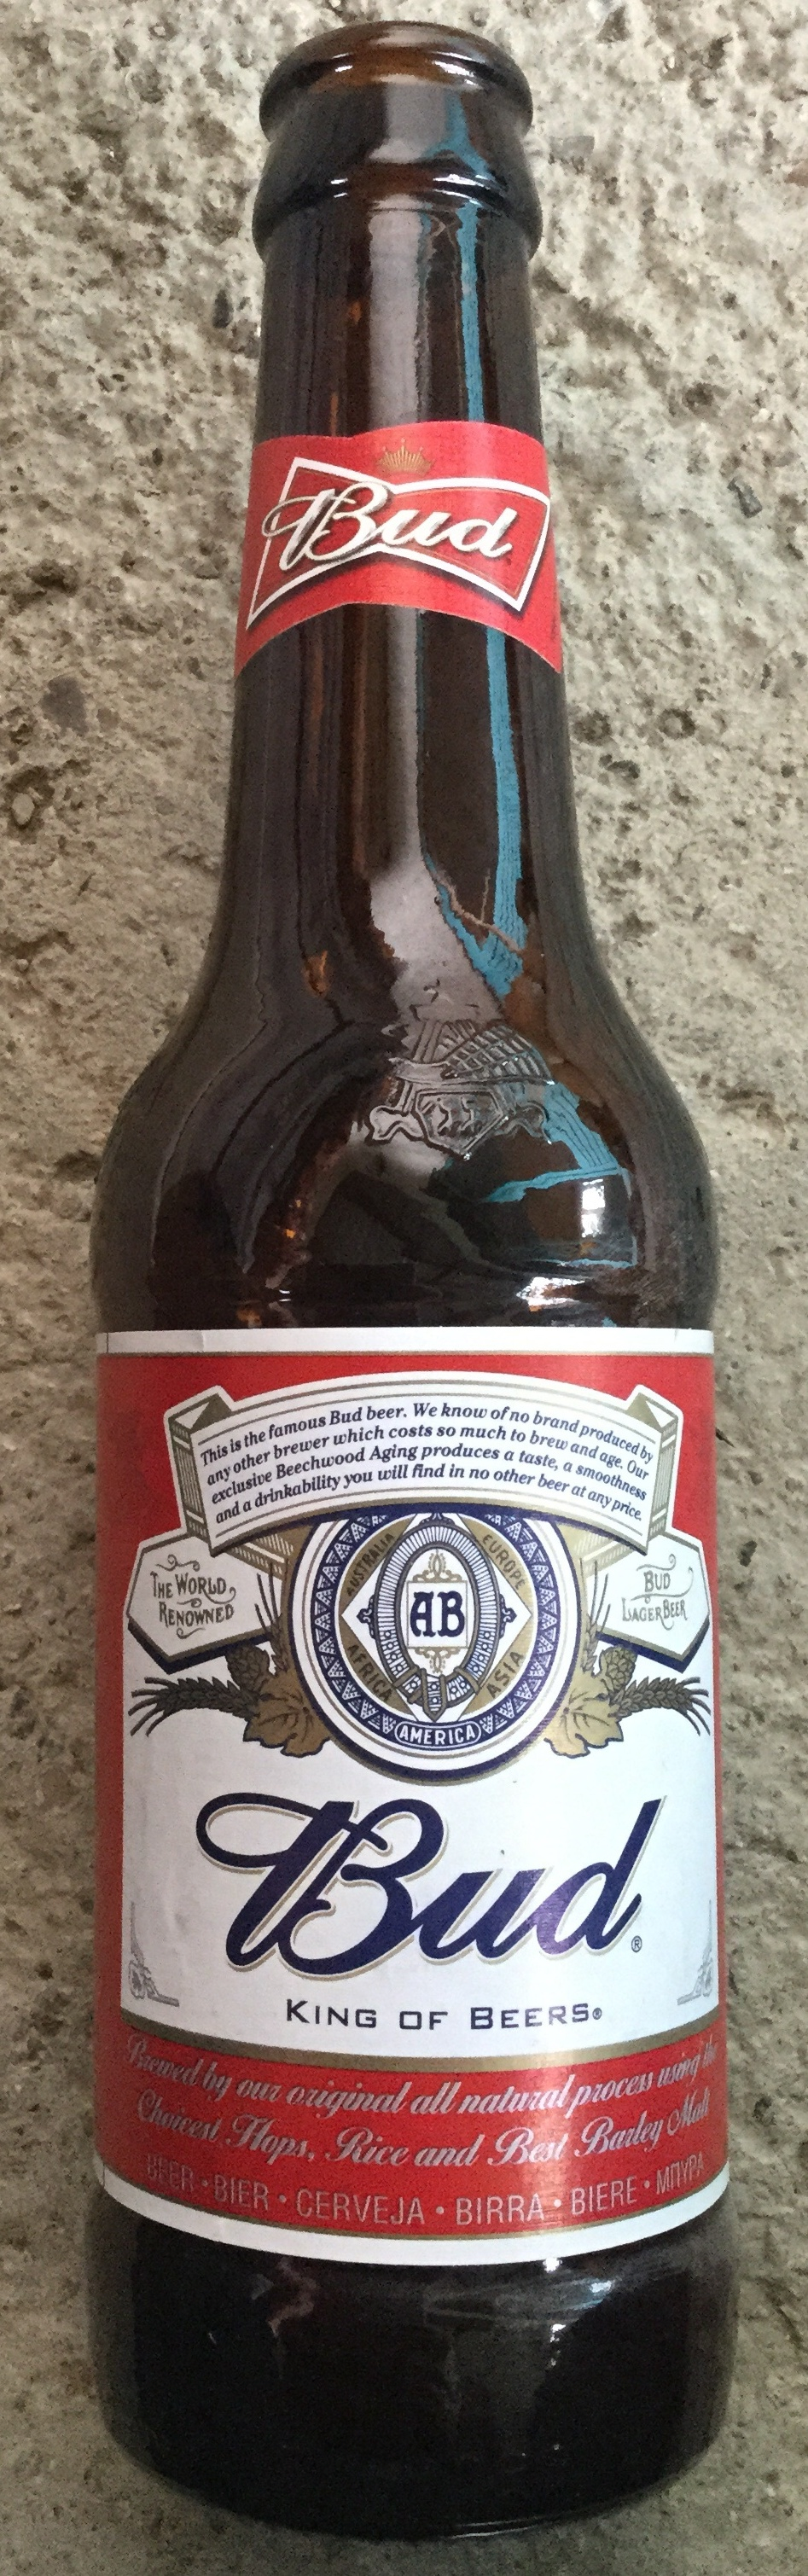 Bud king of beers - Product - fr